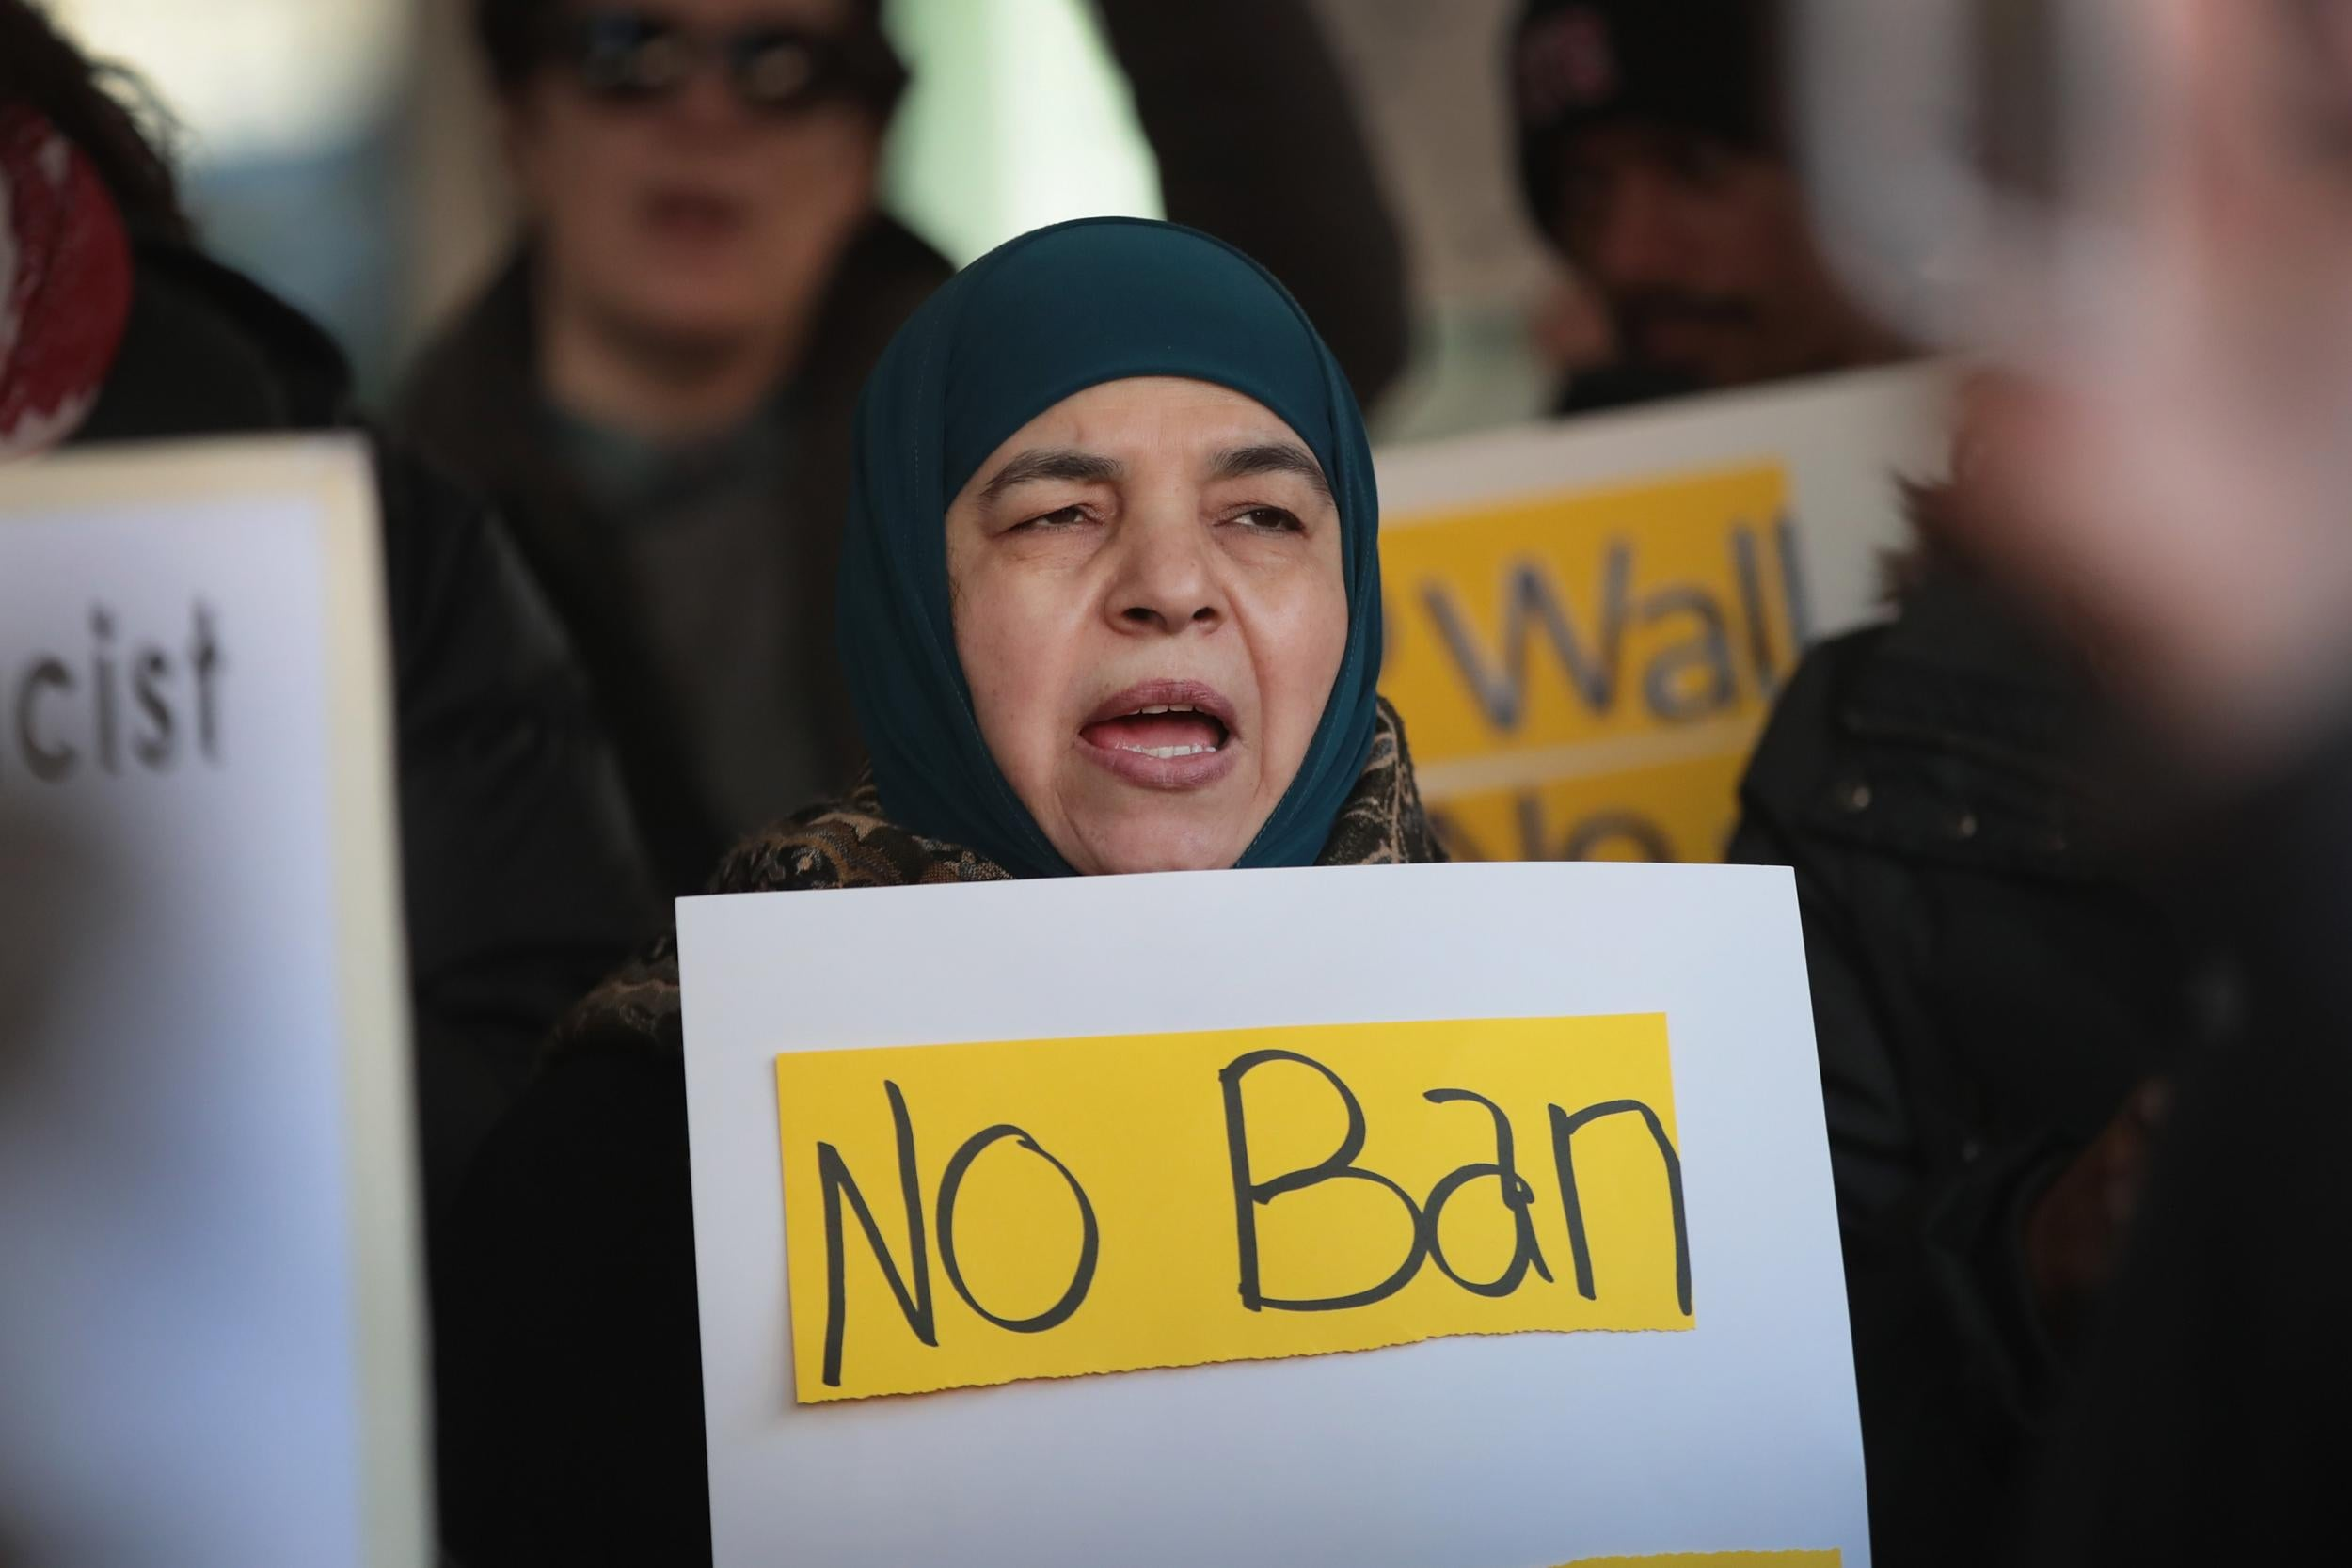 4th Circuit Court Of Appeals Latest News Breaking Stories And 9th Upholds Travel Ban Injunction